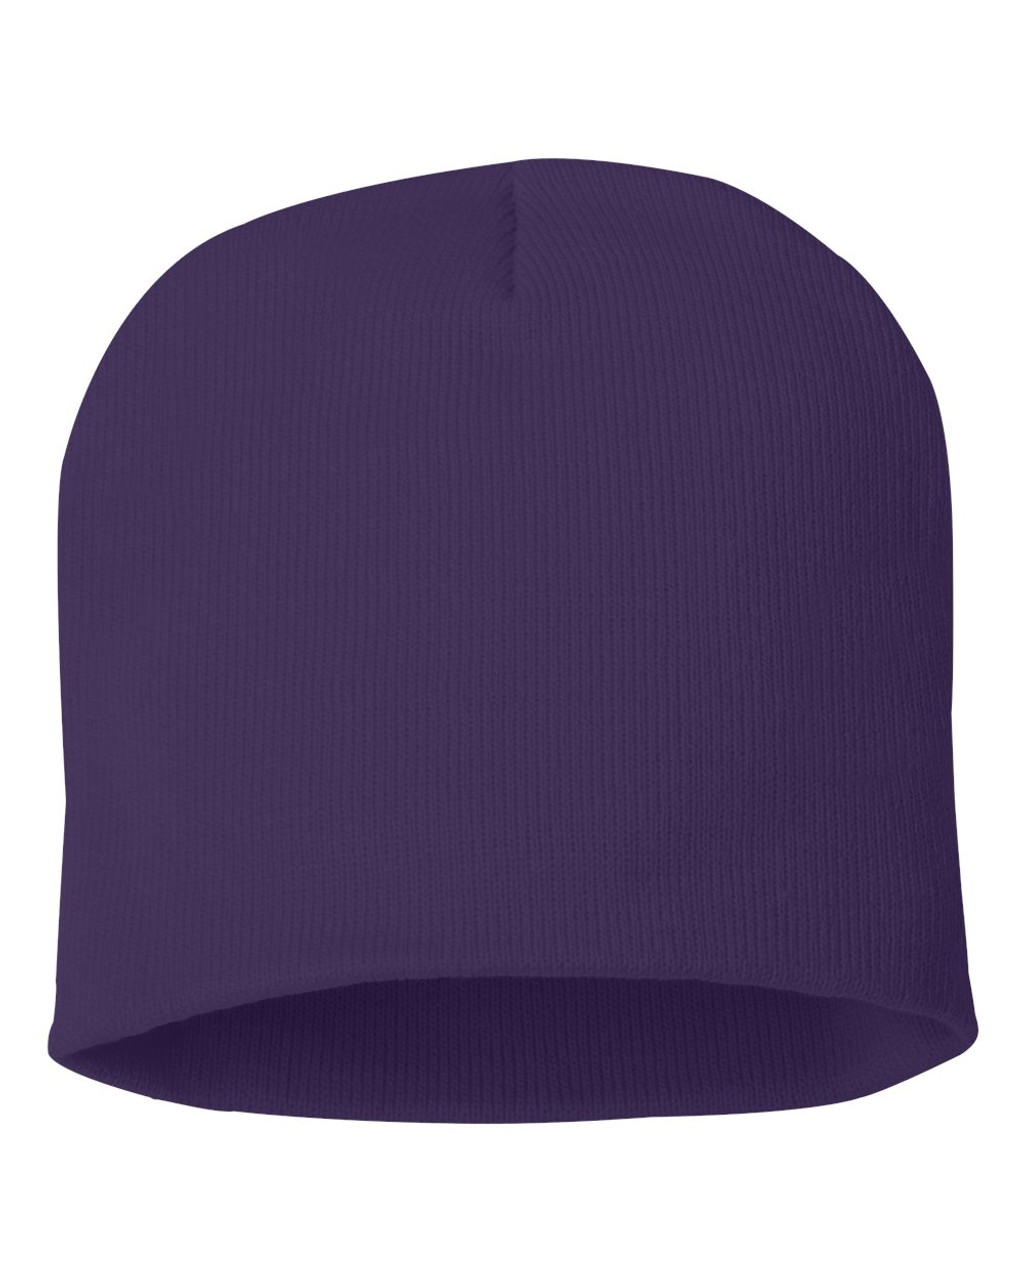 "Purple - SP08 Sportsman Acrylic Knit 8"" Toque 